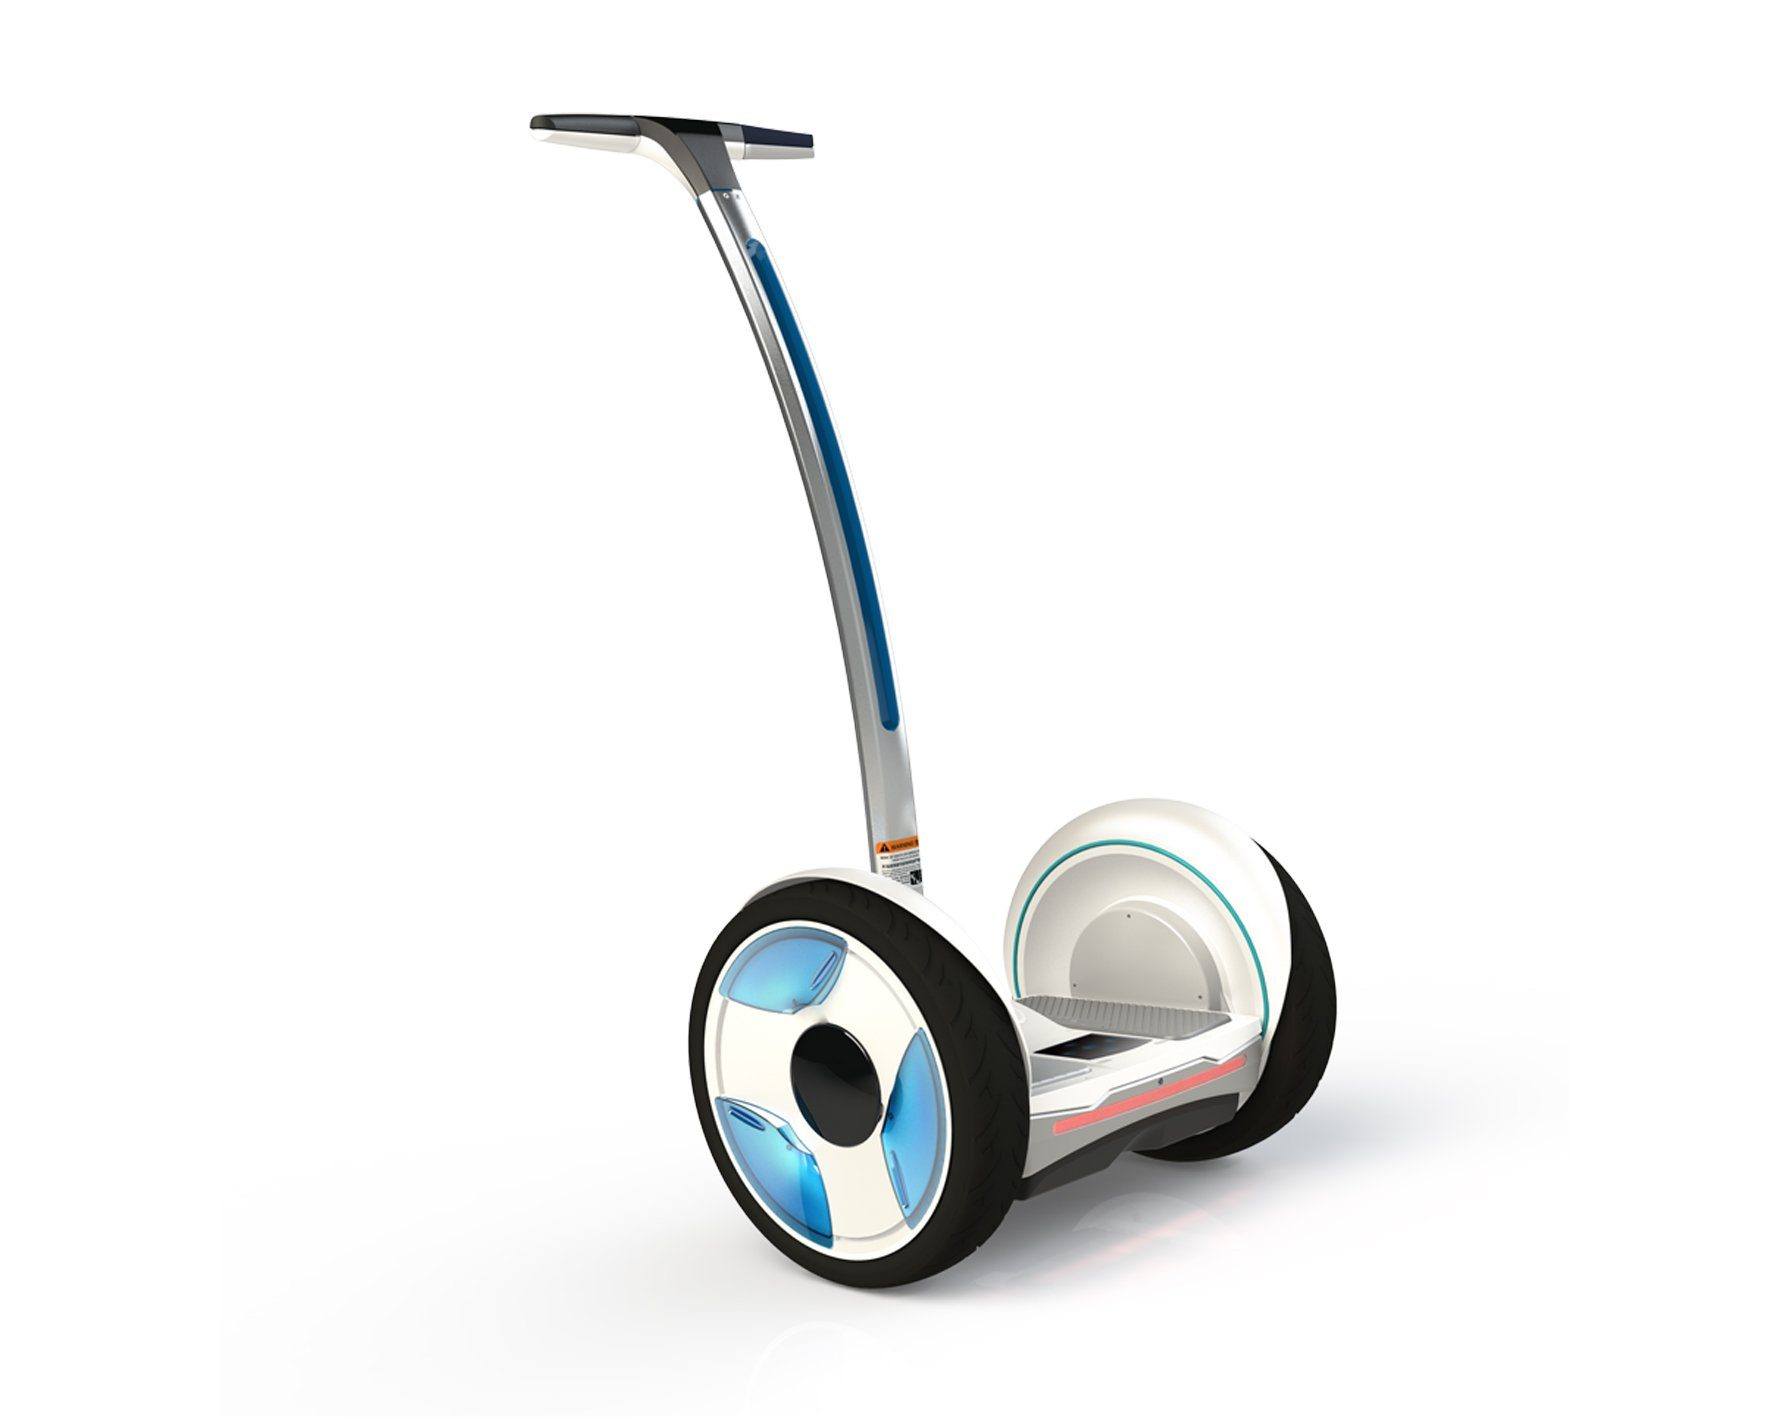 NINEBOT BY SEGWAY Elite Mini Flight Self Balancing Scooter for Sale in UK, 1 Year Warranty in 25% Offer Price